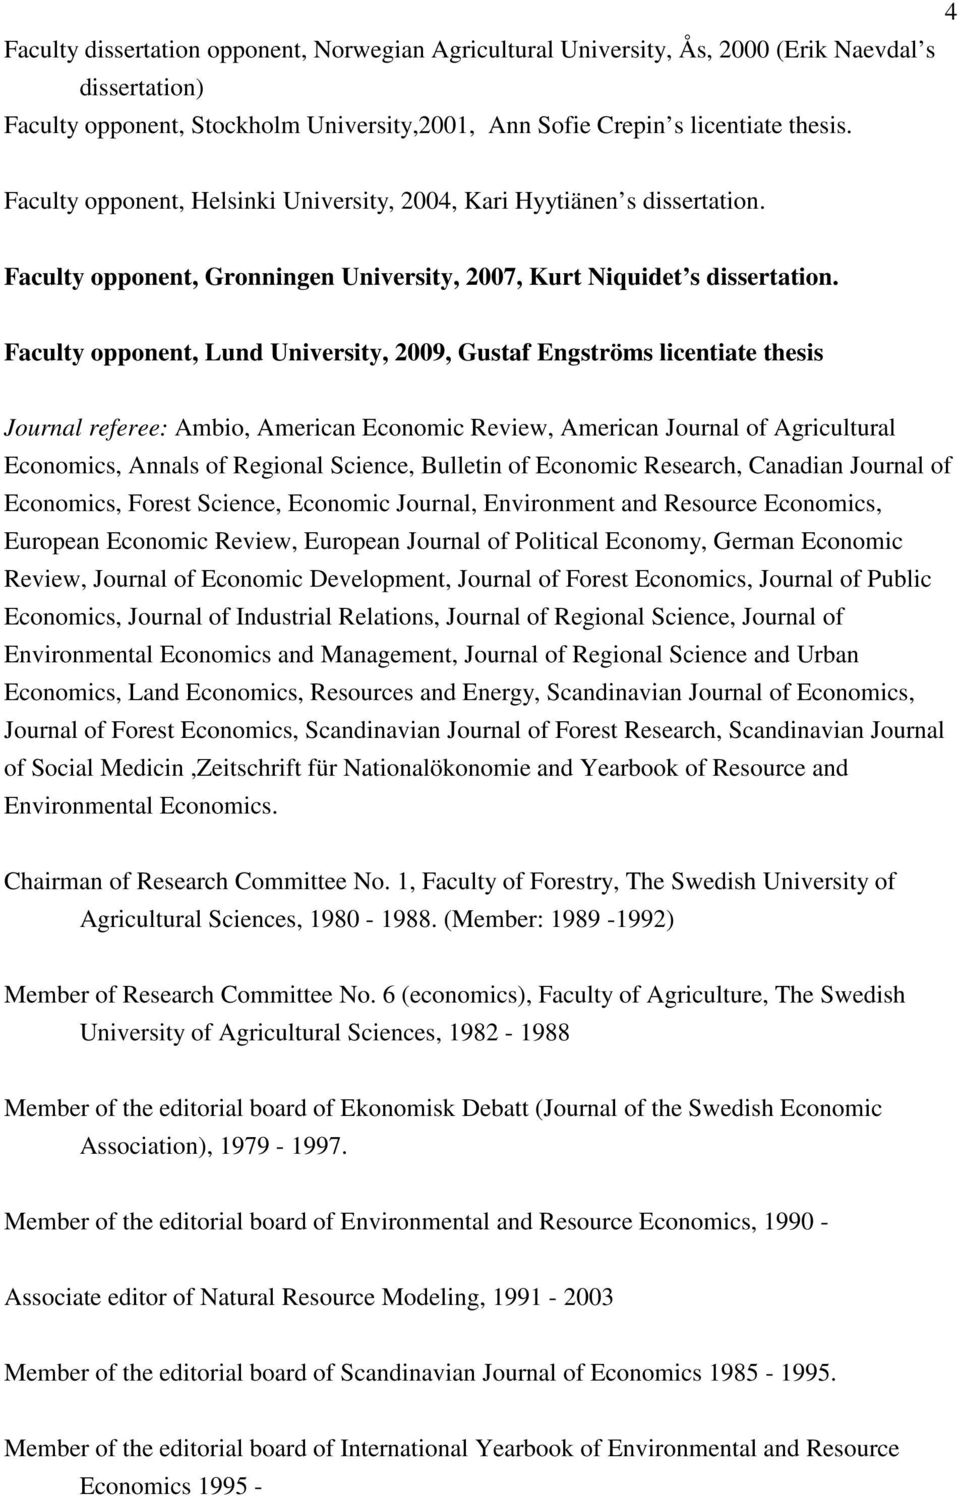 Faculty opponent, Lund University, 2009, Gustaf Engströms licentiate thesis Journal referee: Ambio, American Economic Review, American Journal of Agricultural Economics, Annals of Regional Science,